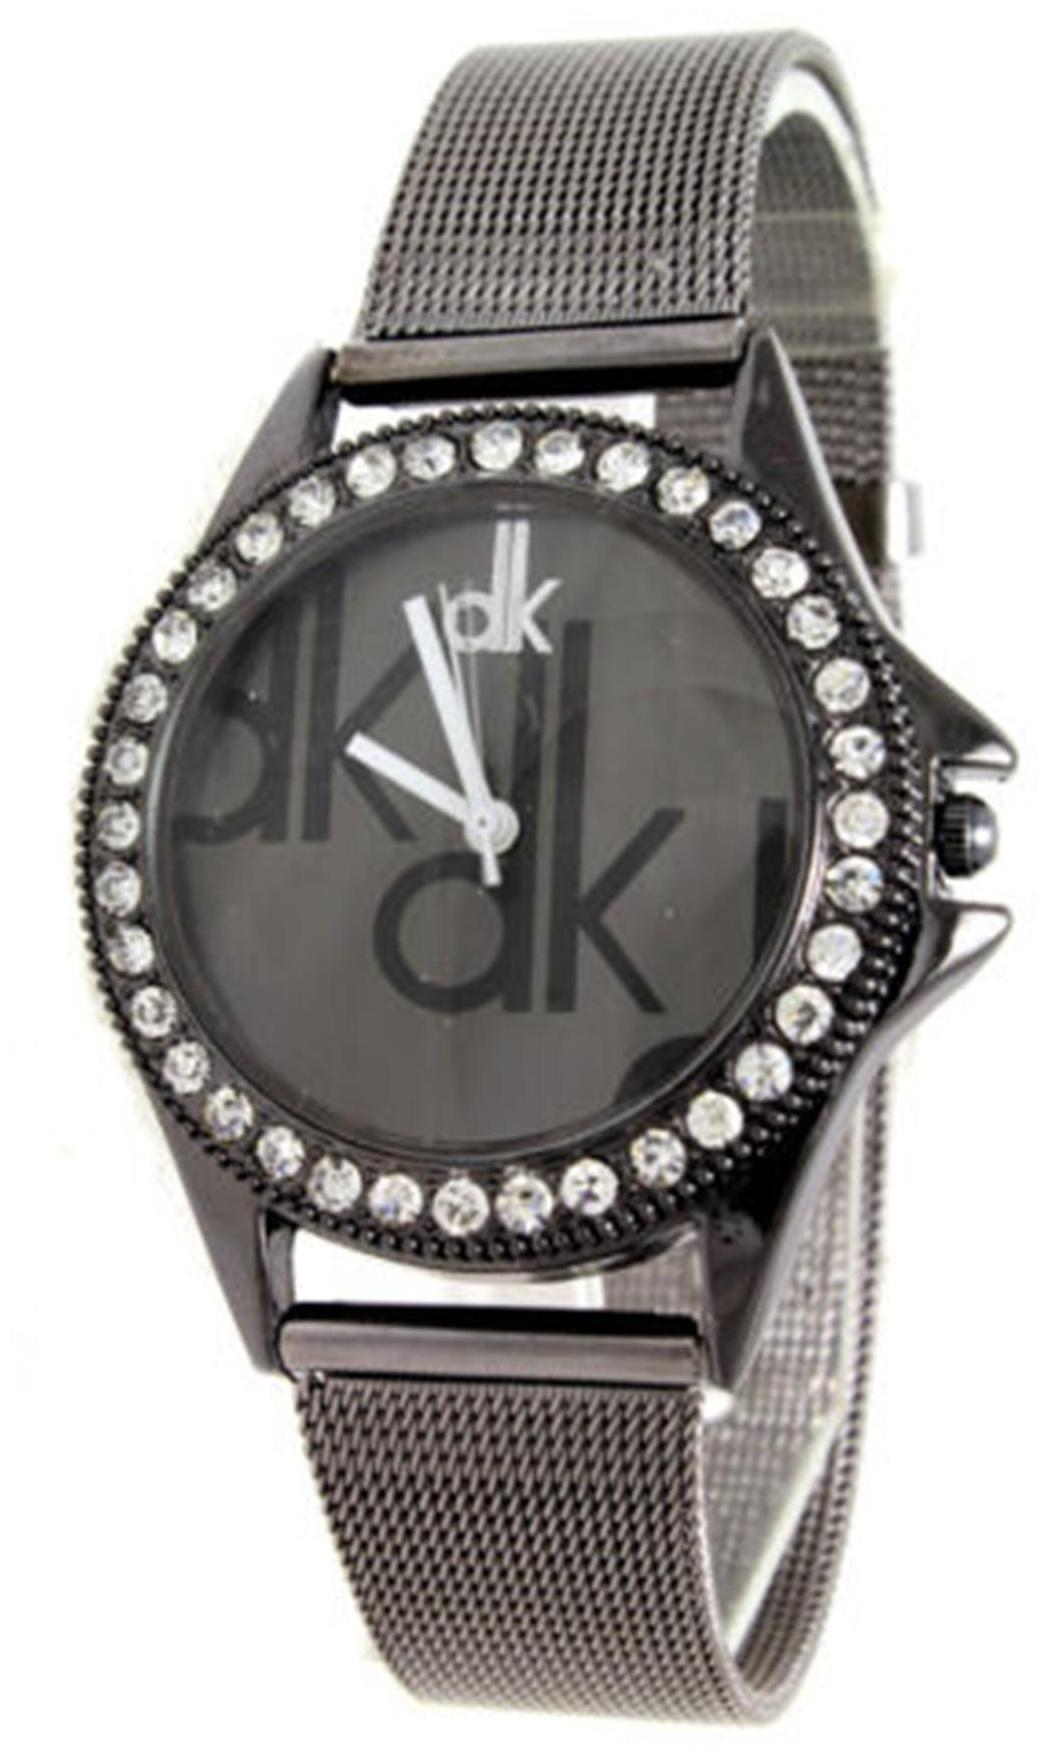 Grey Crystunned dial with Velcro strap for women. image